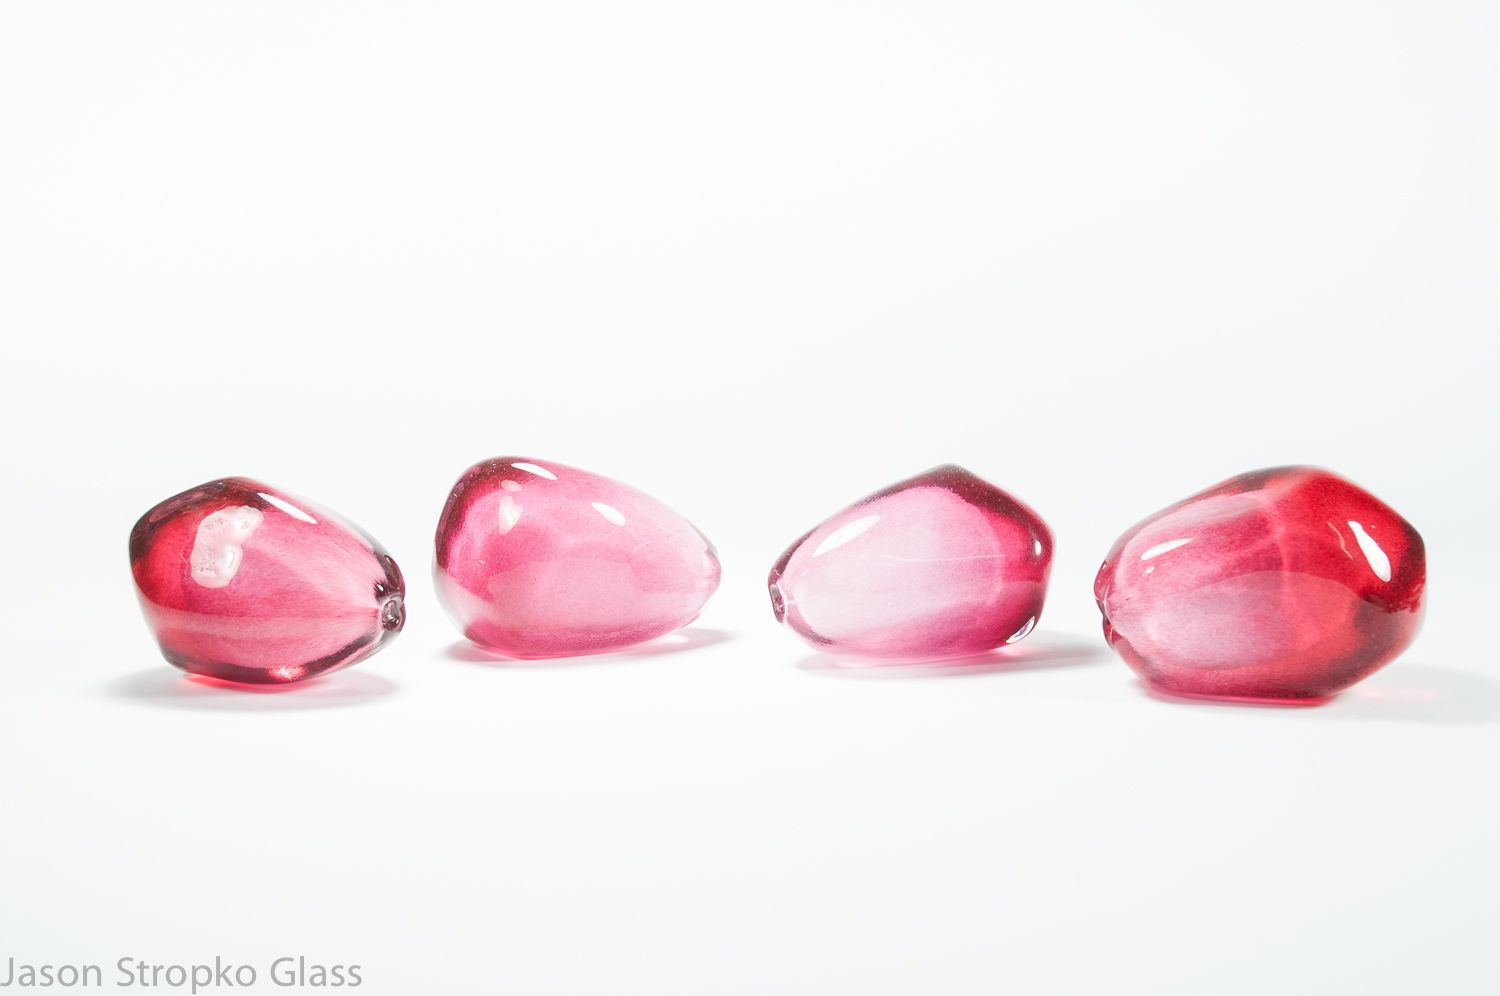 Dark Rose Pomegranate Seeds, made by Jason Stropko  qualities: partially translucent, light catching and reflective.   Contact Jason via his Facebook page